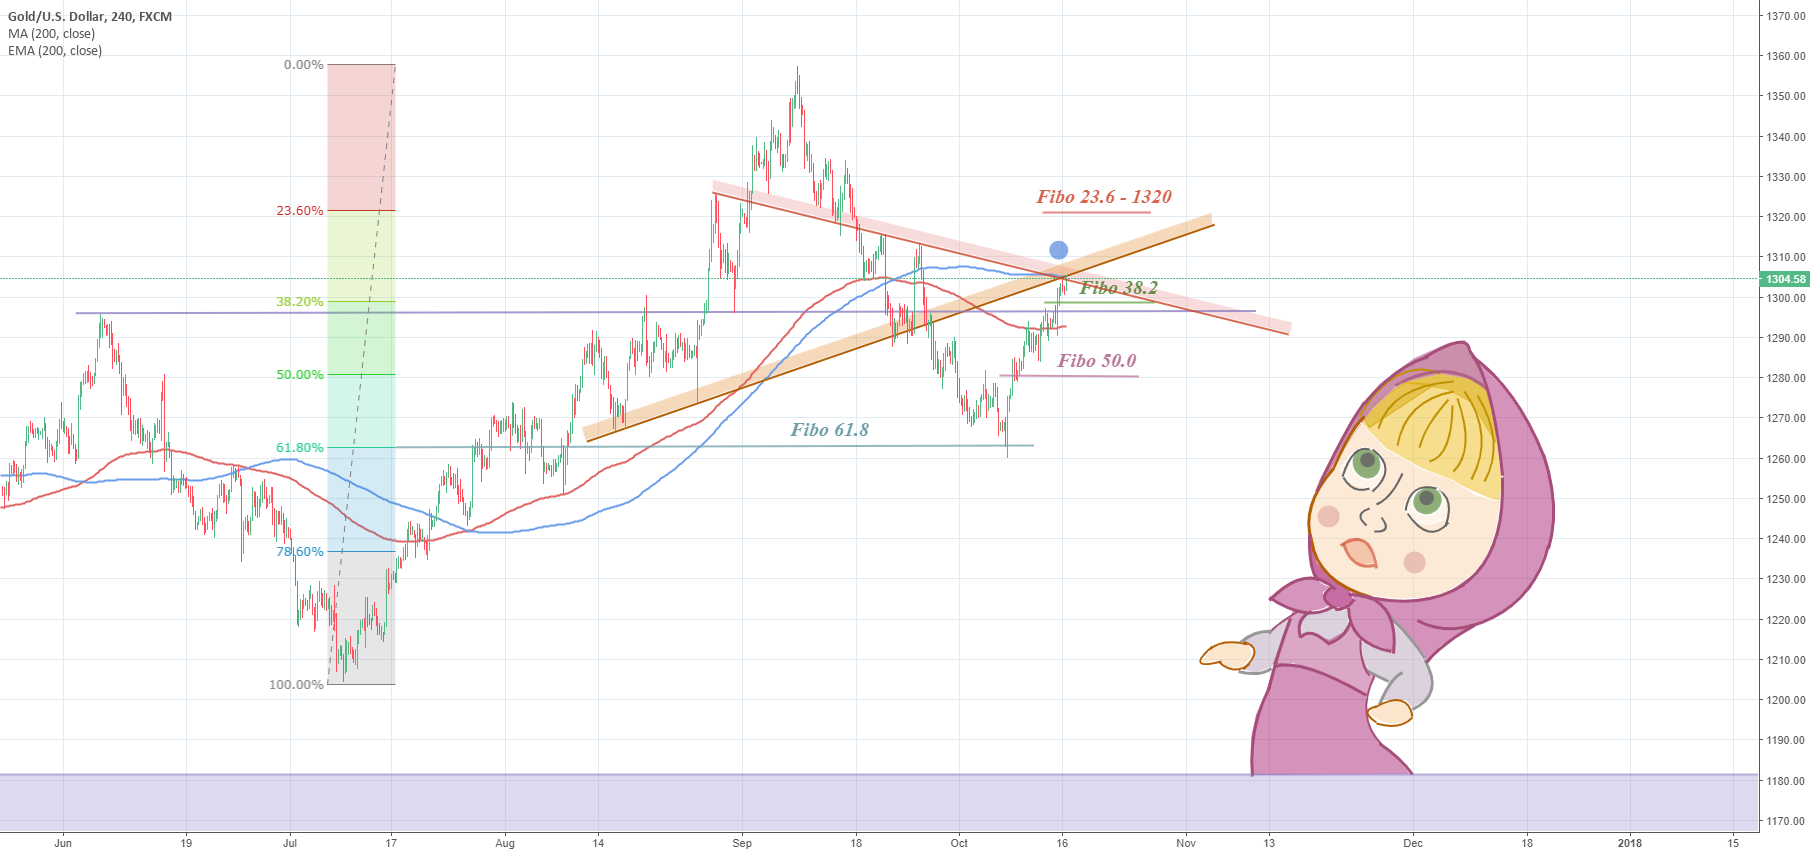 Gold – Seems bullish again but still to be confirmed